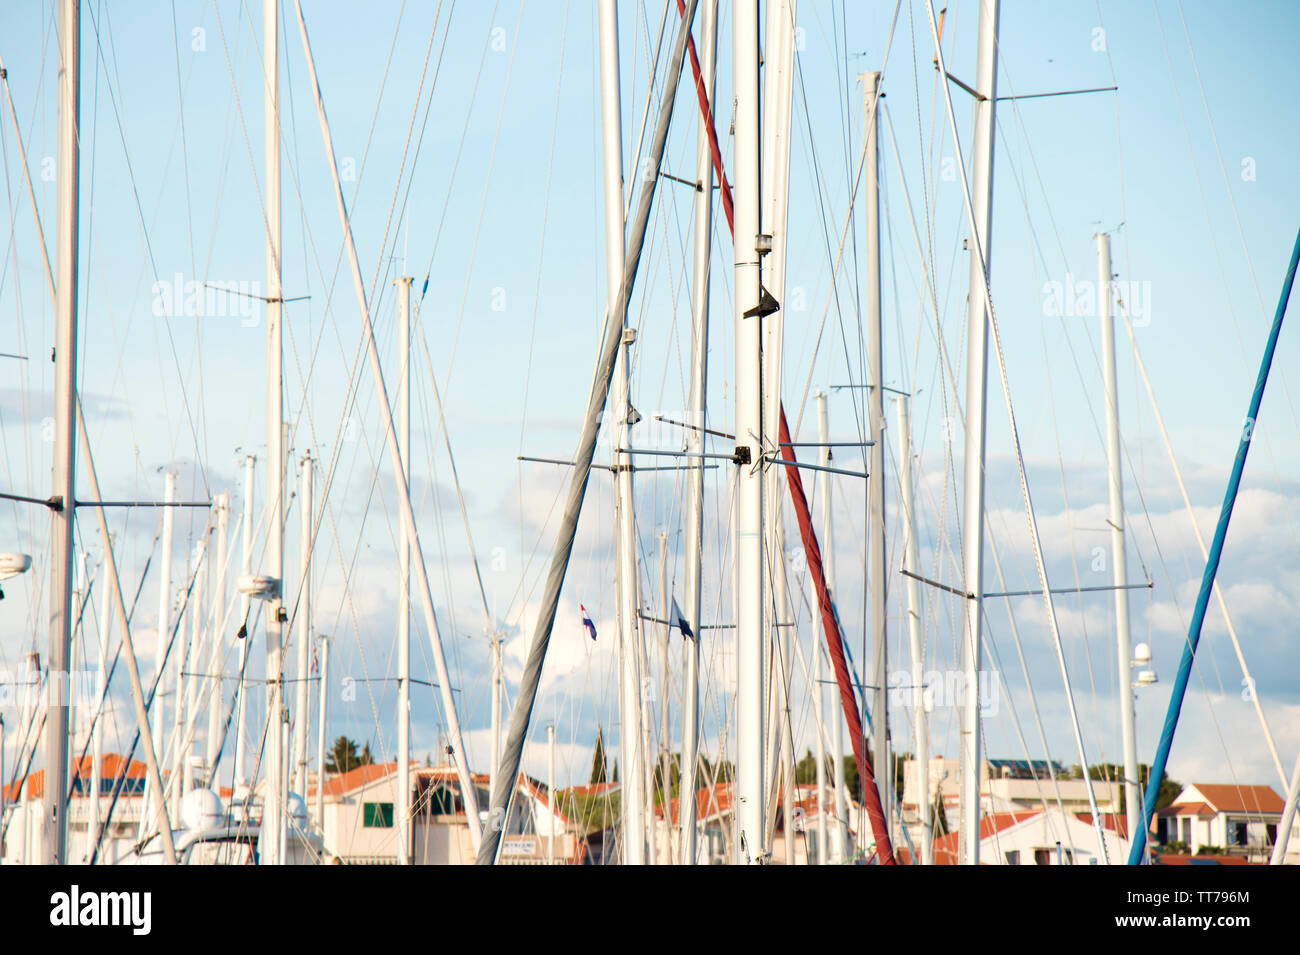 Masts of sailing boats fleet anchored in marina with town houses in the background - Stock Image